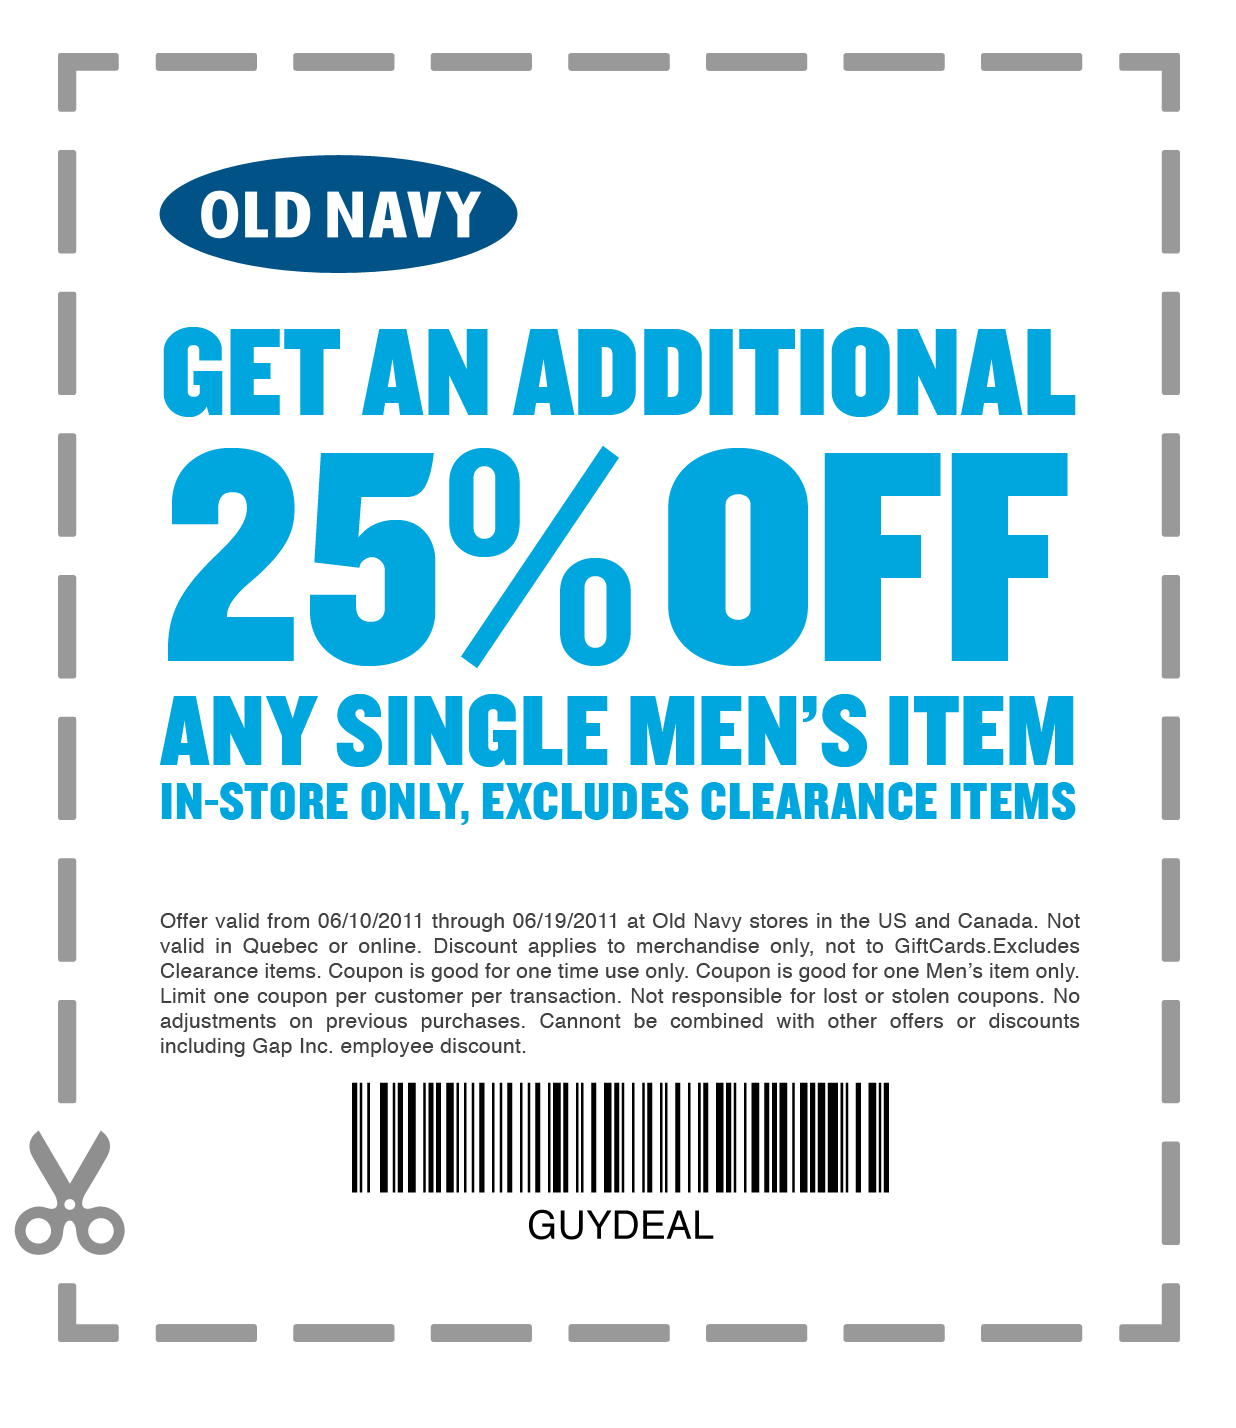 Find best of old navy coupon promo codes, coupons, online deals and in store Top Brands & Savings · + Coupons Available · New Offers Added DailyTypes: Specialty Stores, Grocery Stores, Factory Outlets, Retail Chains, Restaurants.